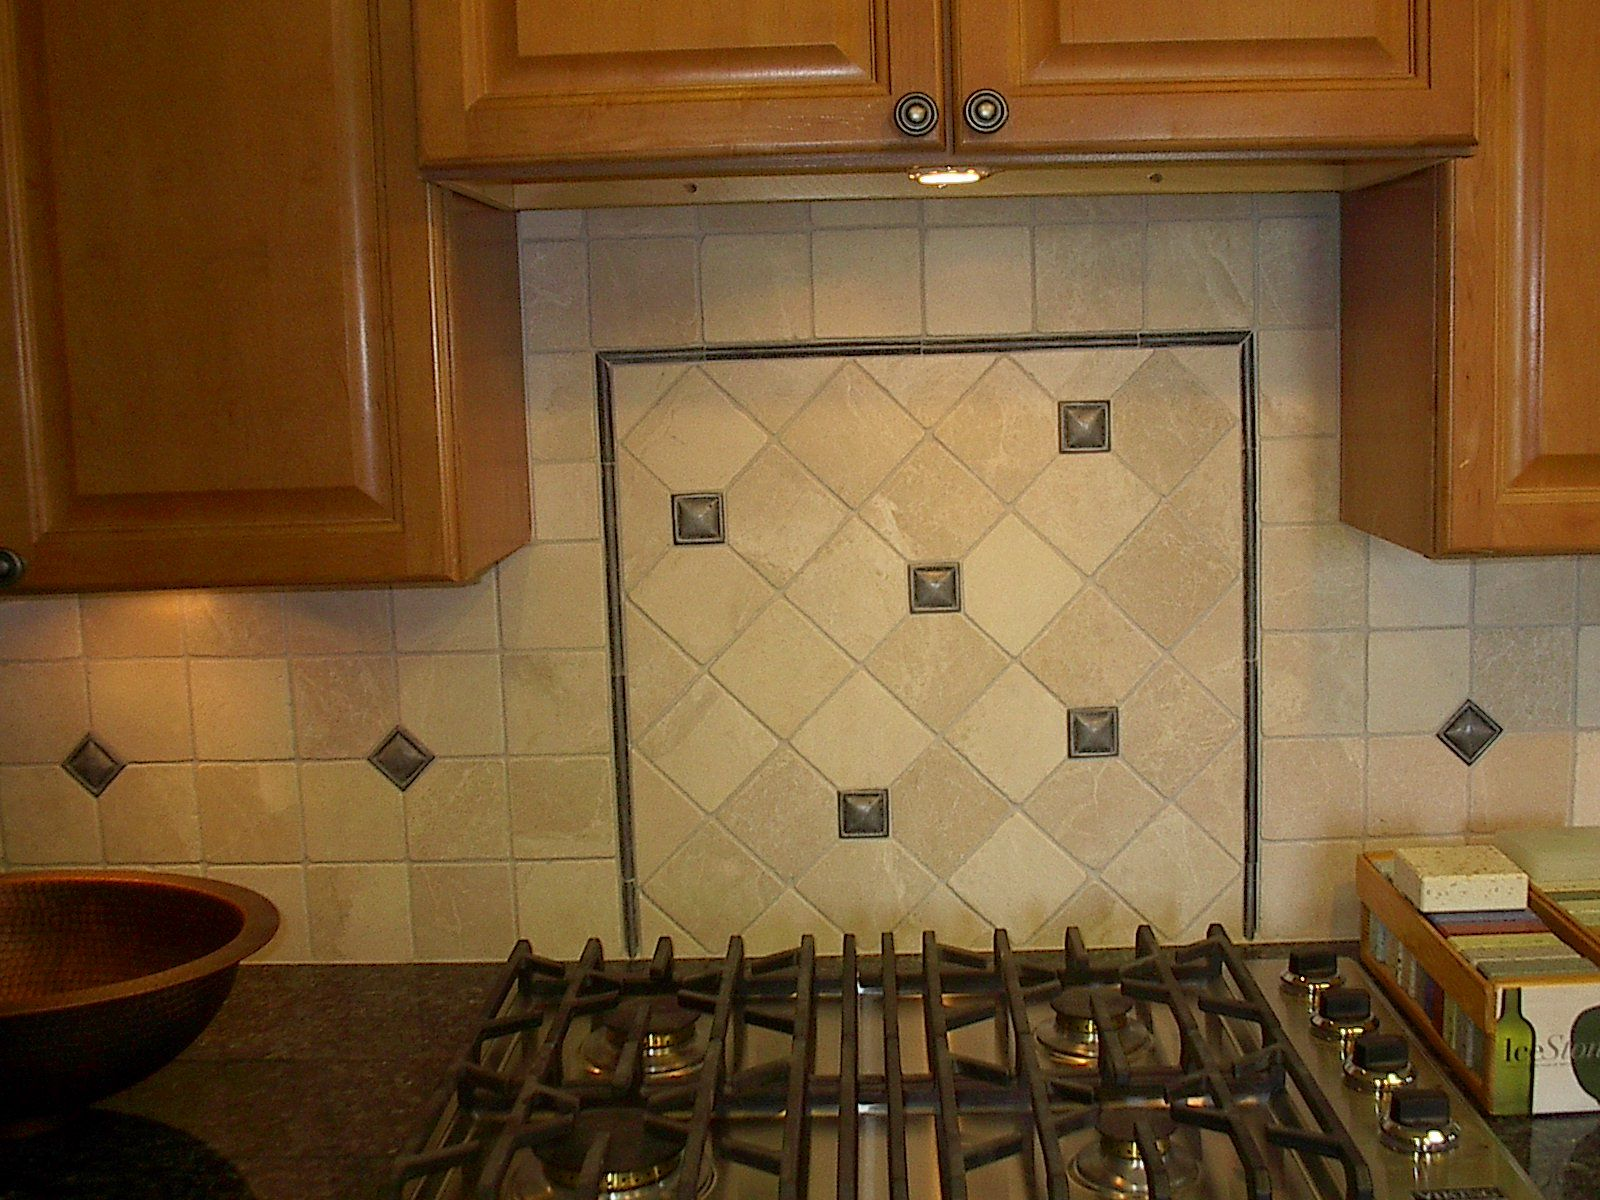 Uncategorized Travertine Kitchen Backsplash travertine tile for backsplash in kitchen exciting decor transformation